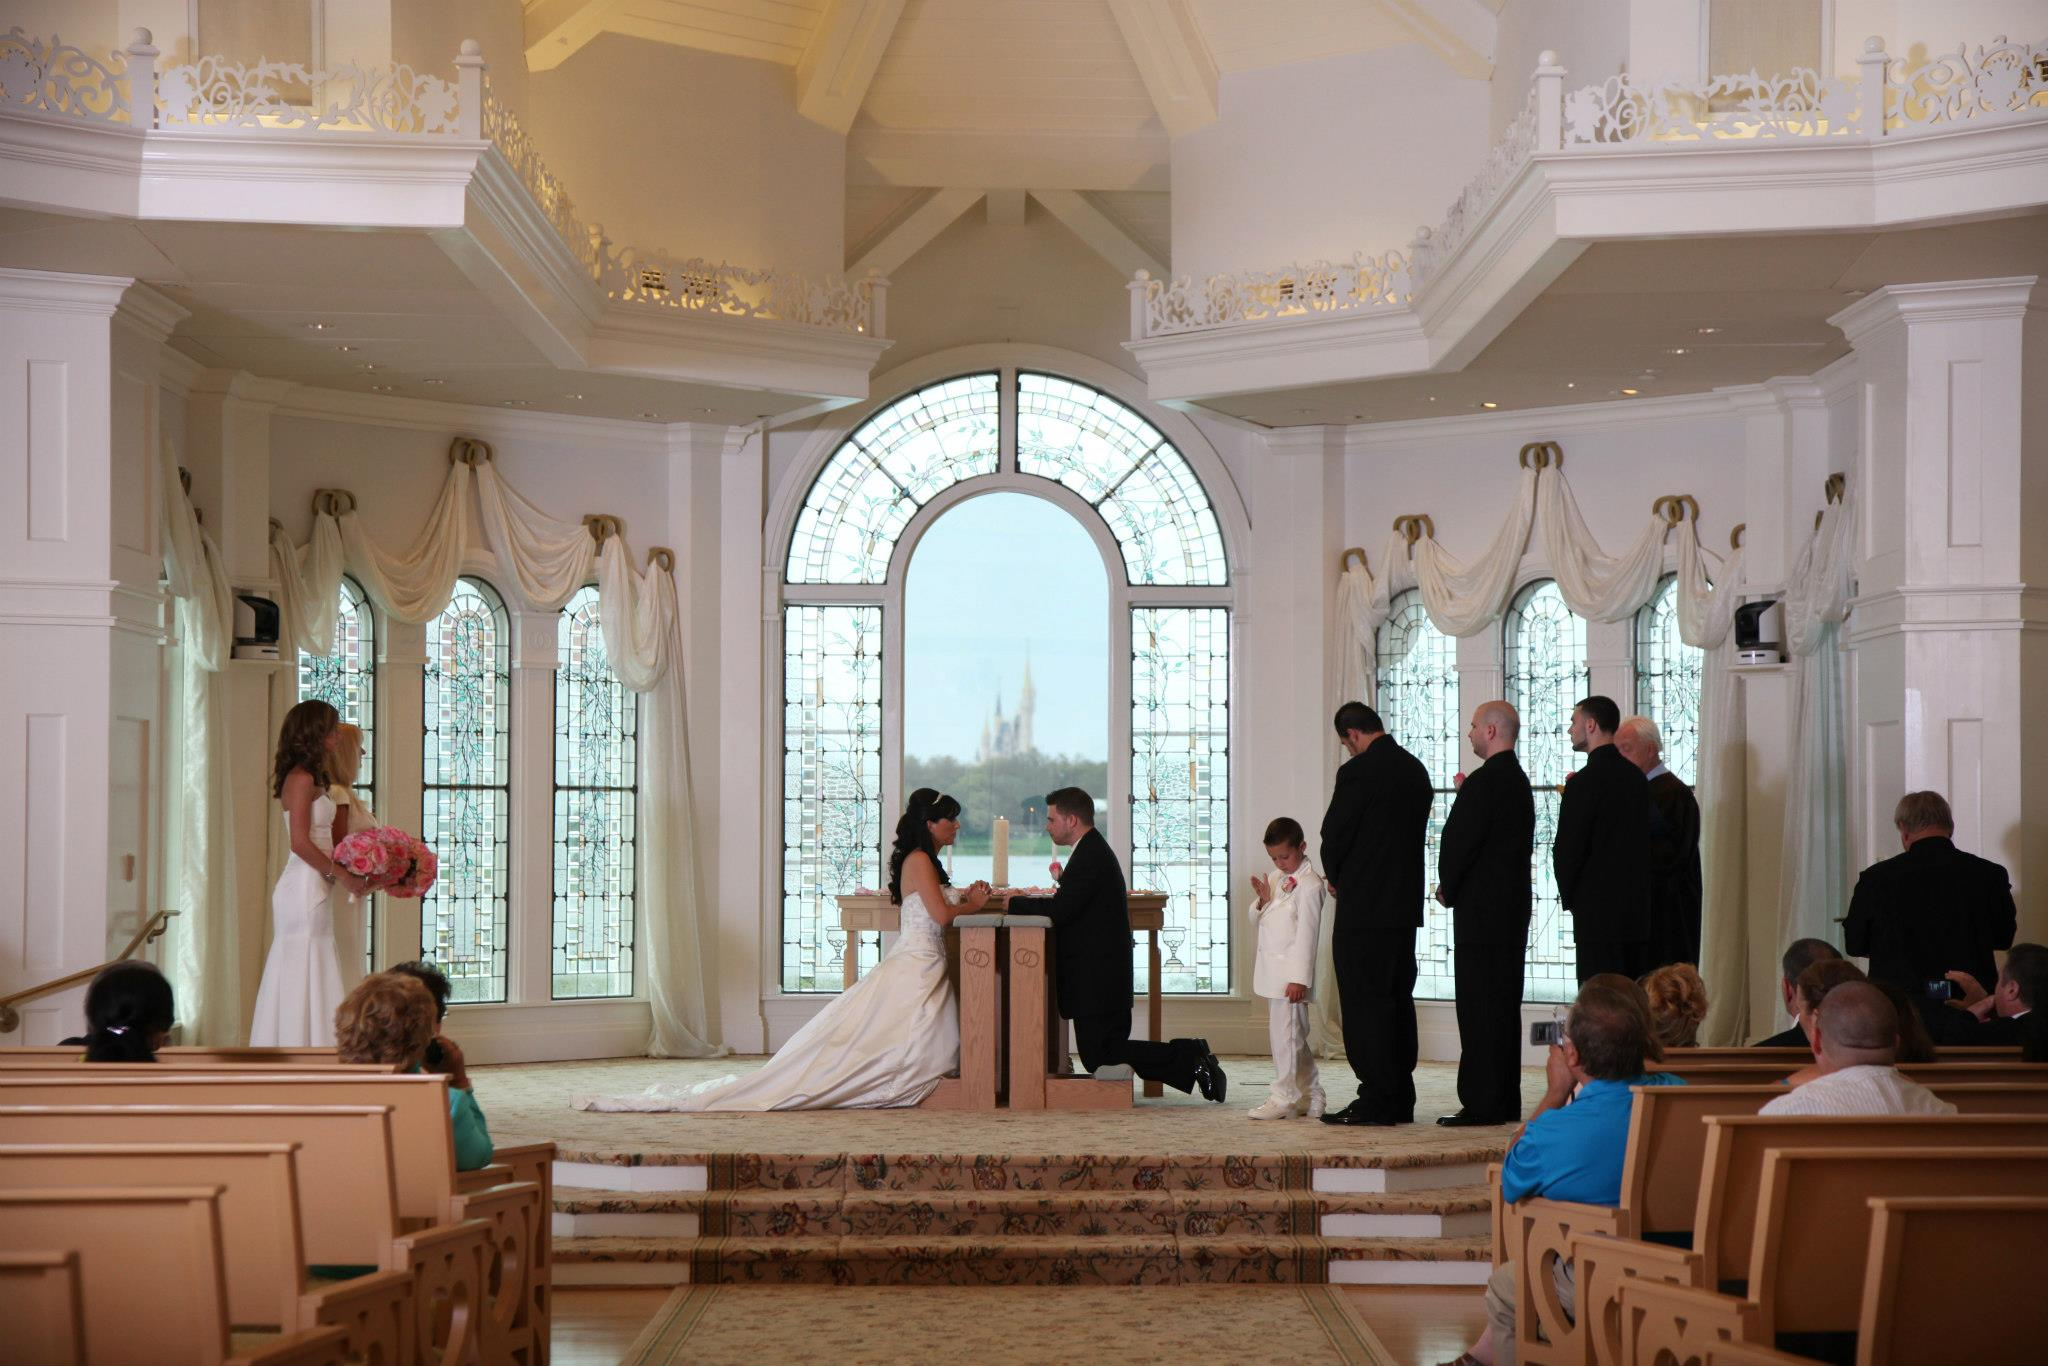 Weddings at disney parks and resorts - 901914_429402213816080_596000243_o 901403_429404393815862_349578236_o